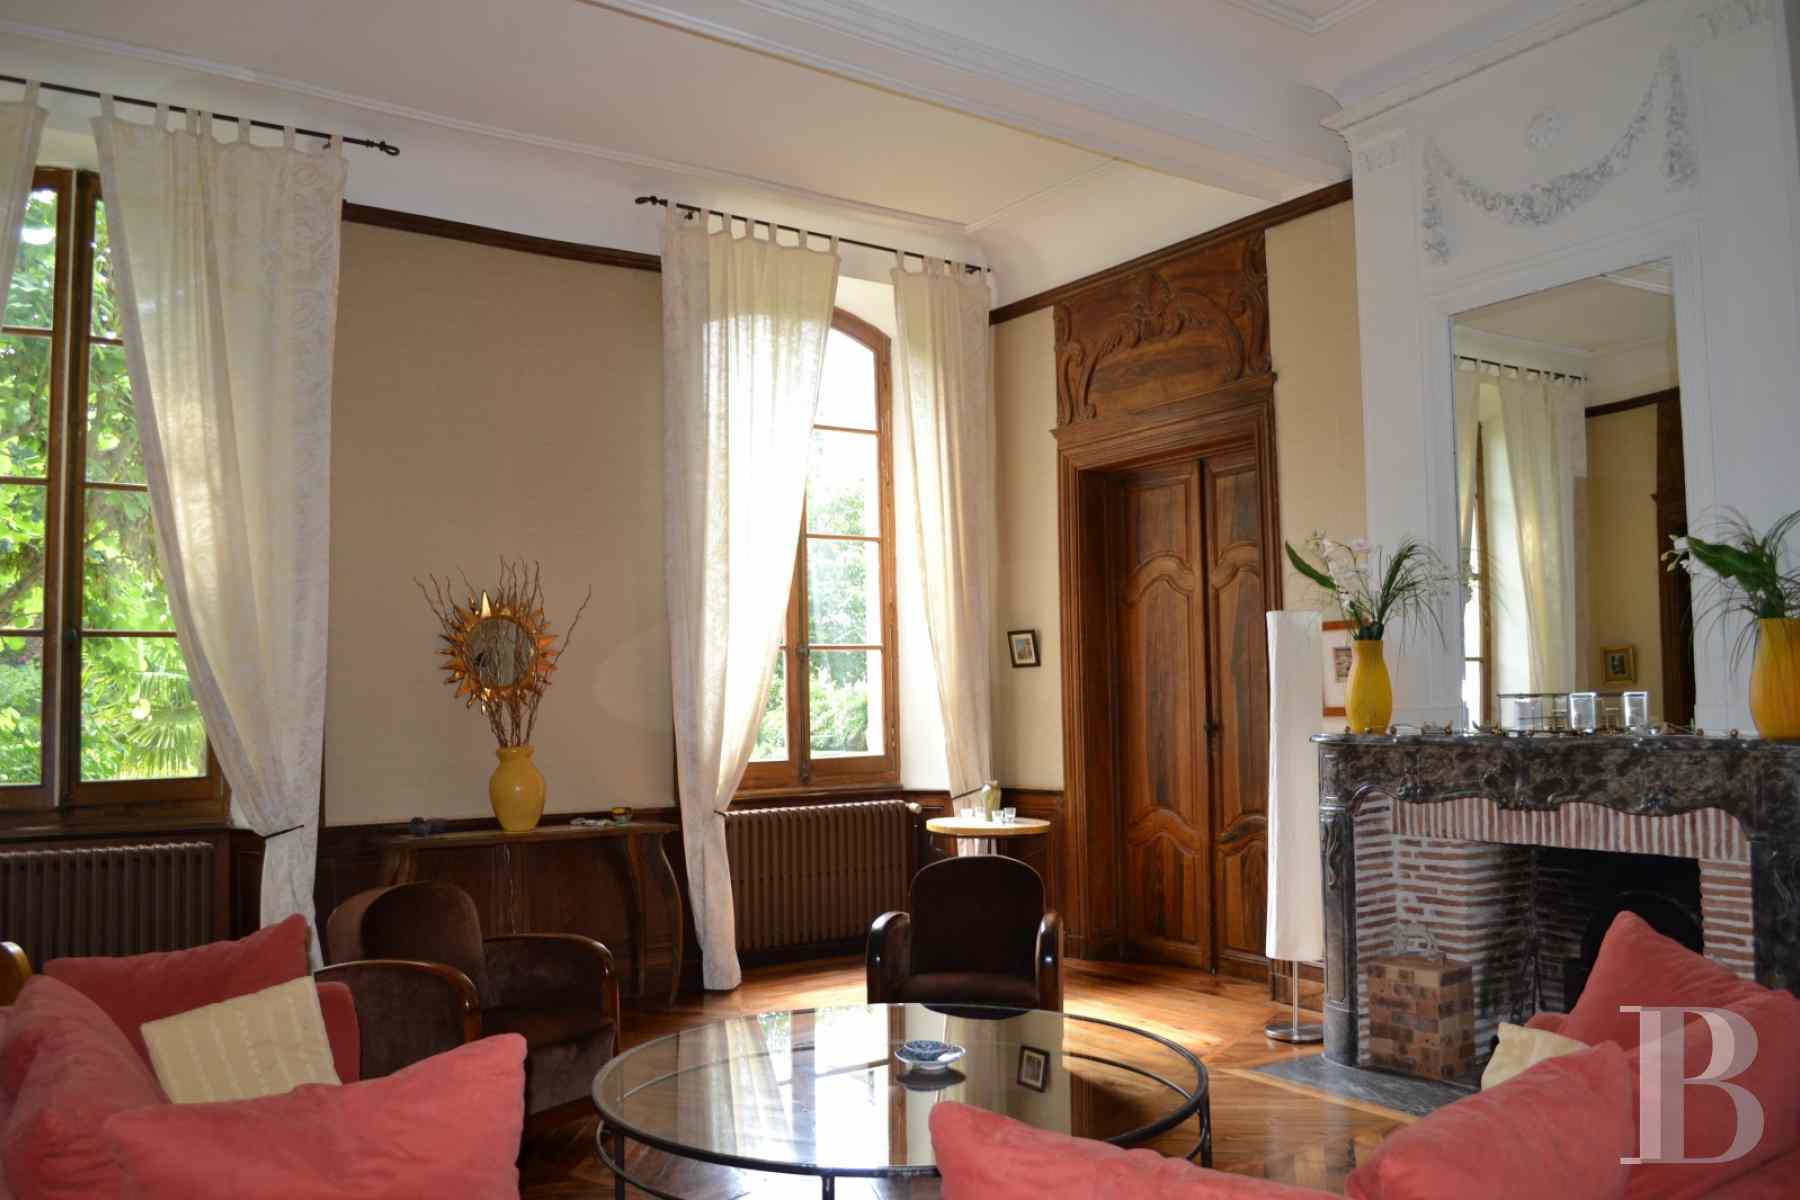 property for sale France aquitaine property 18th - 12 zoom